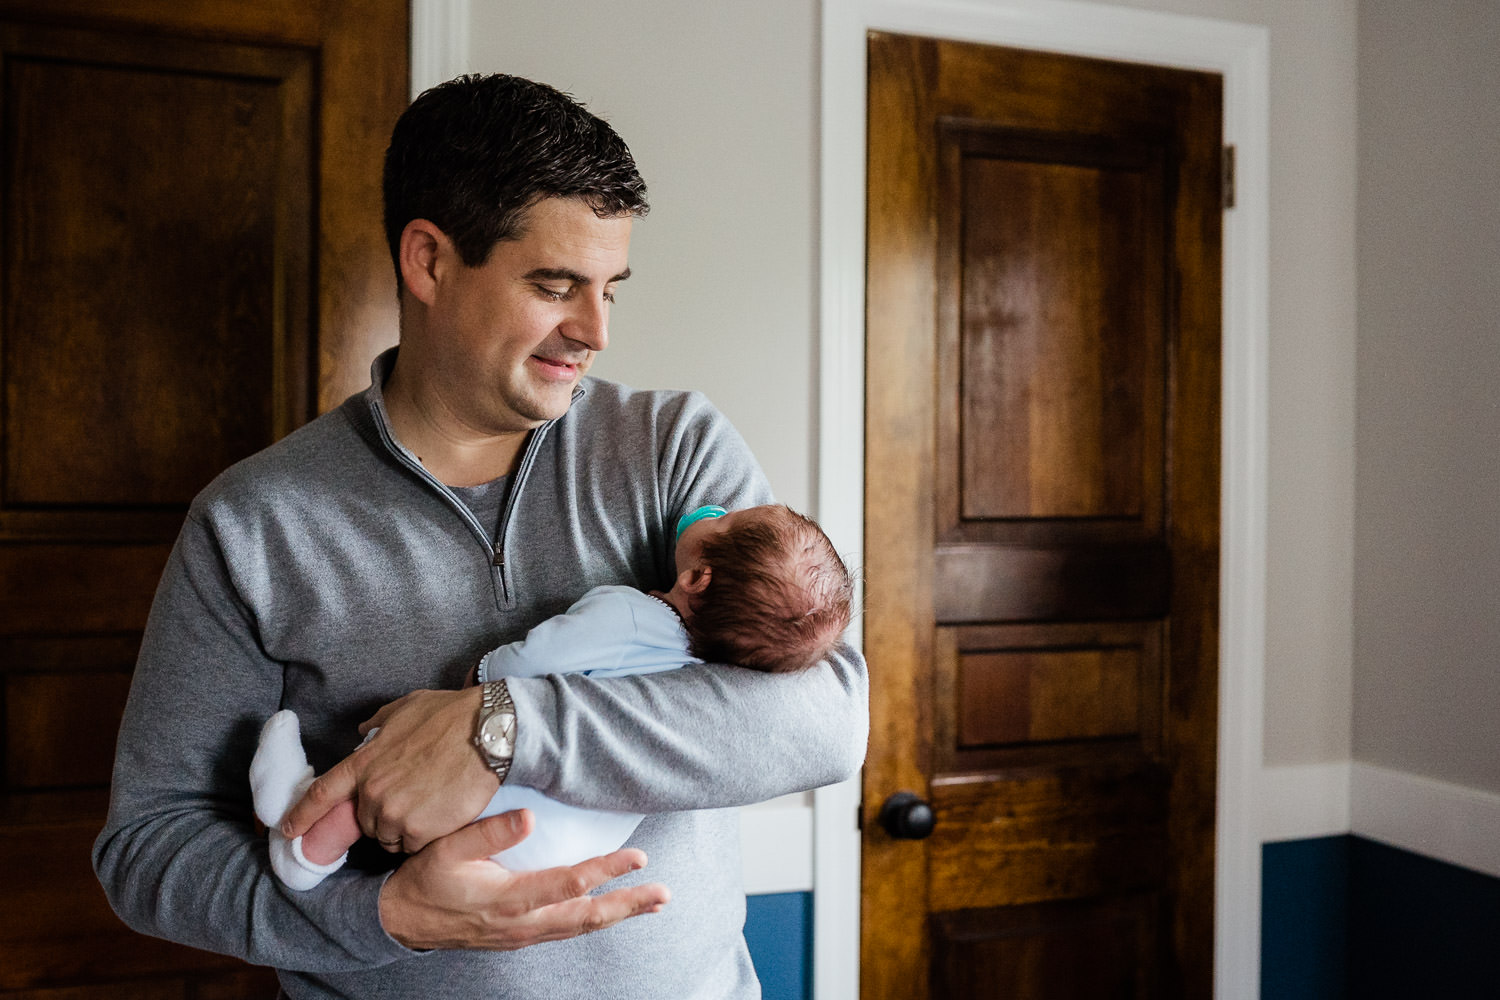 A father holds his newborn baby.